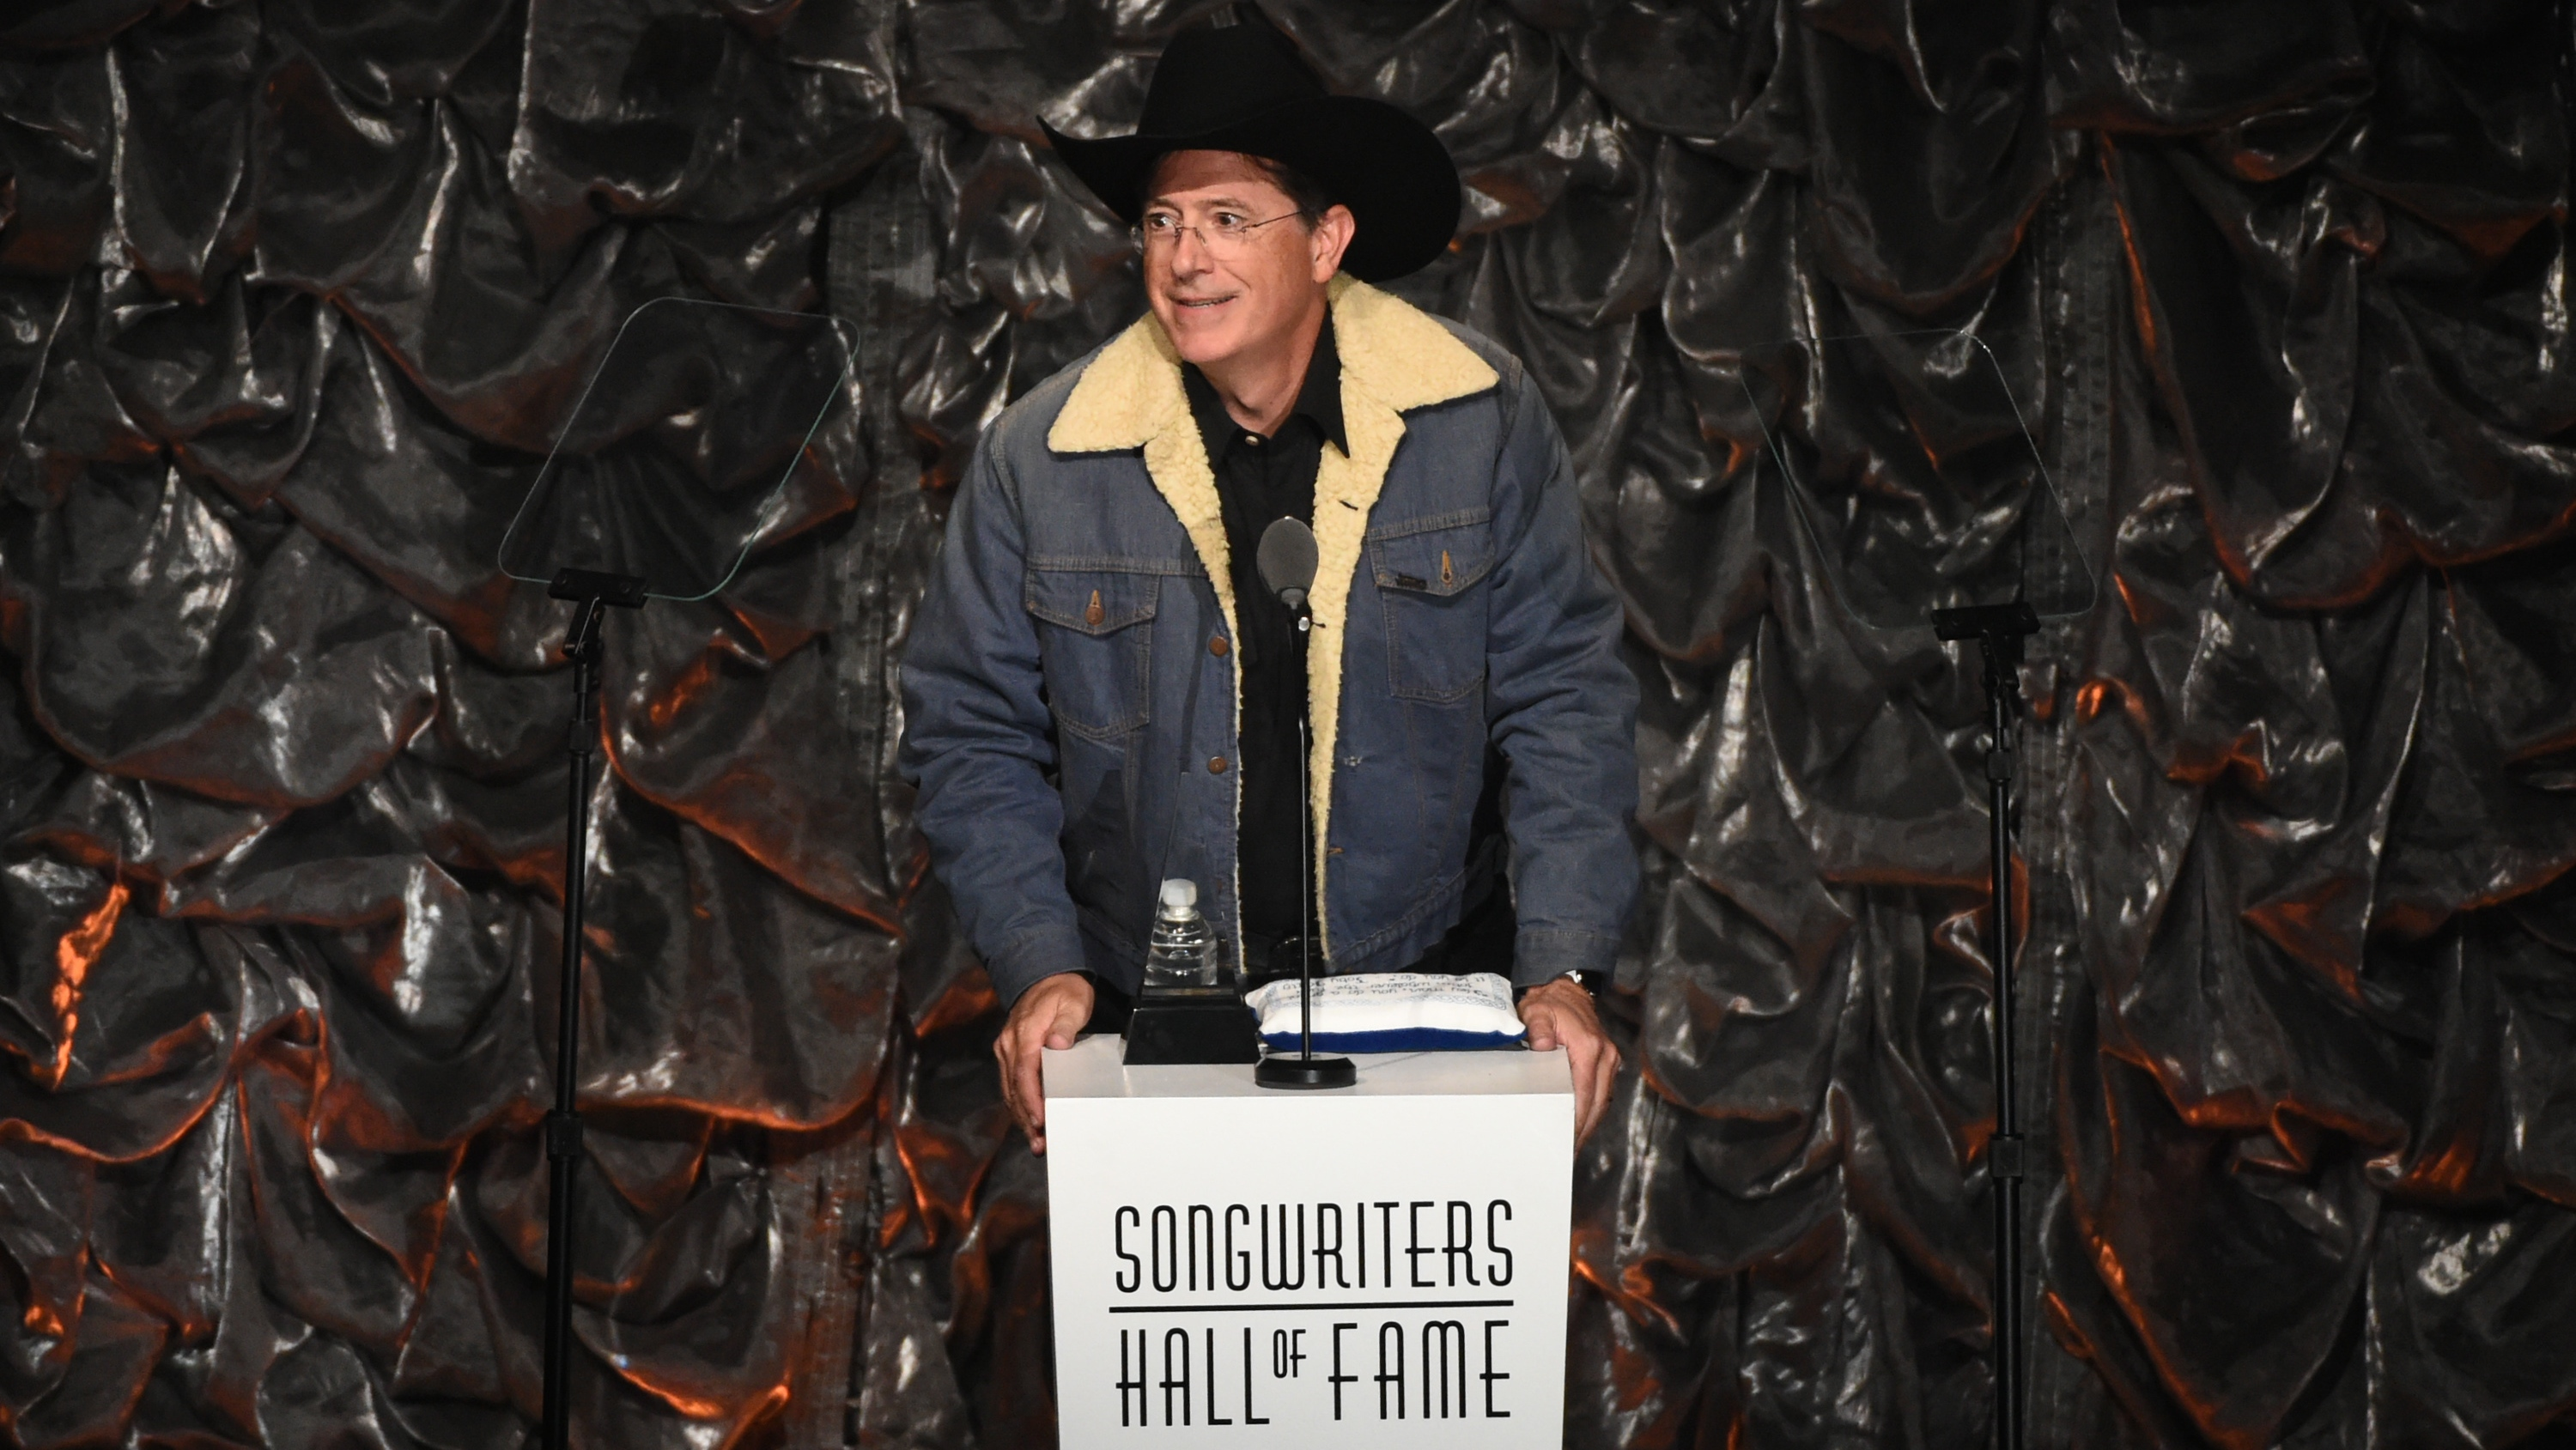 Songwriters Hall of Fame Ceremony Stephen Colbert - H 2015